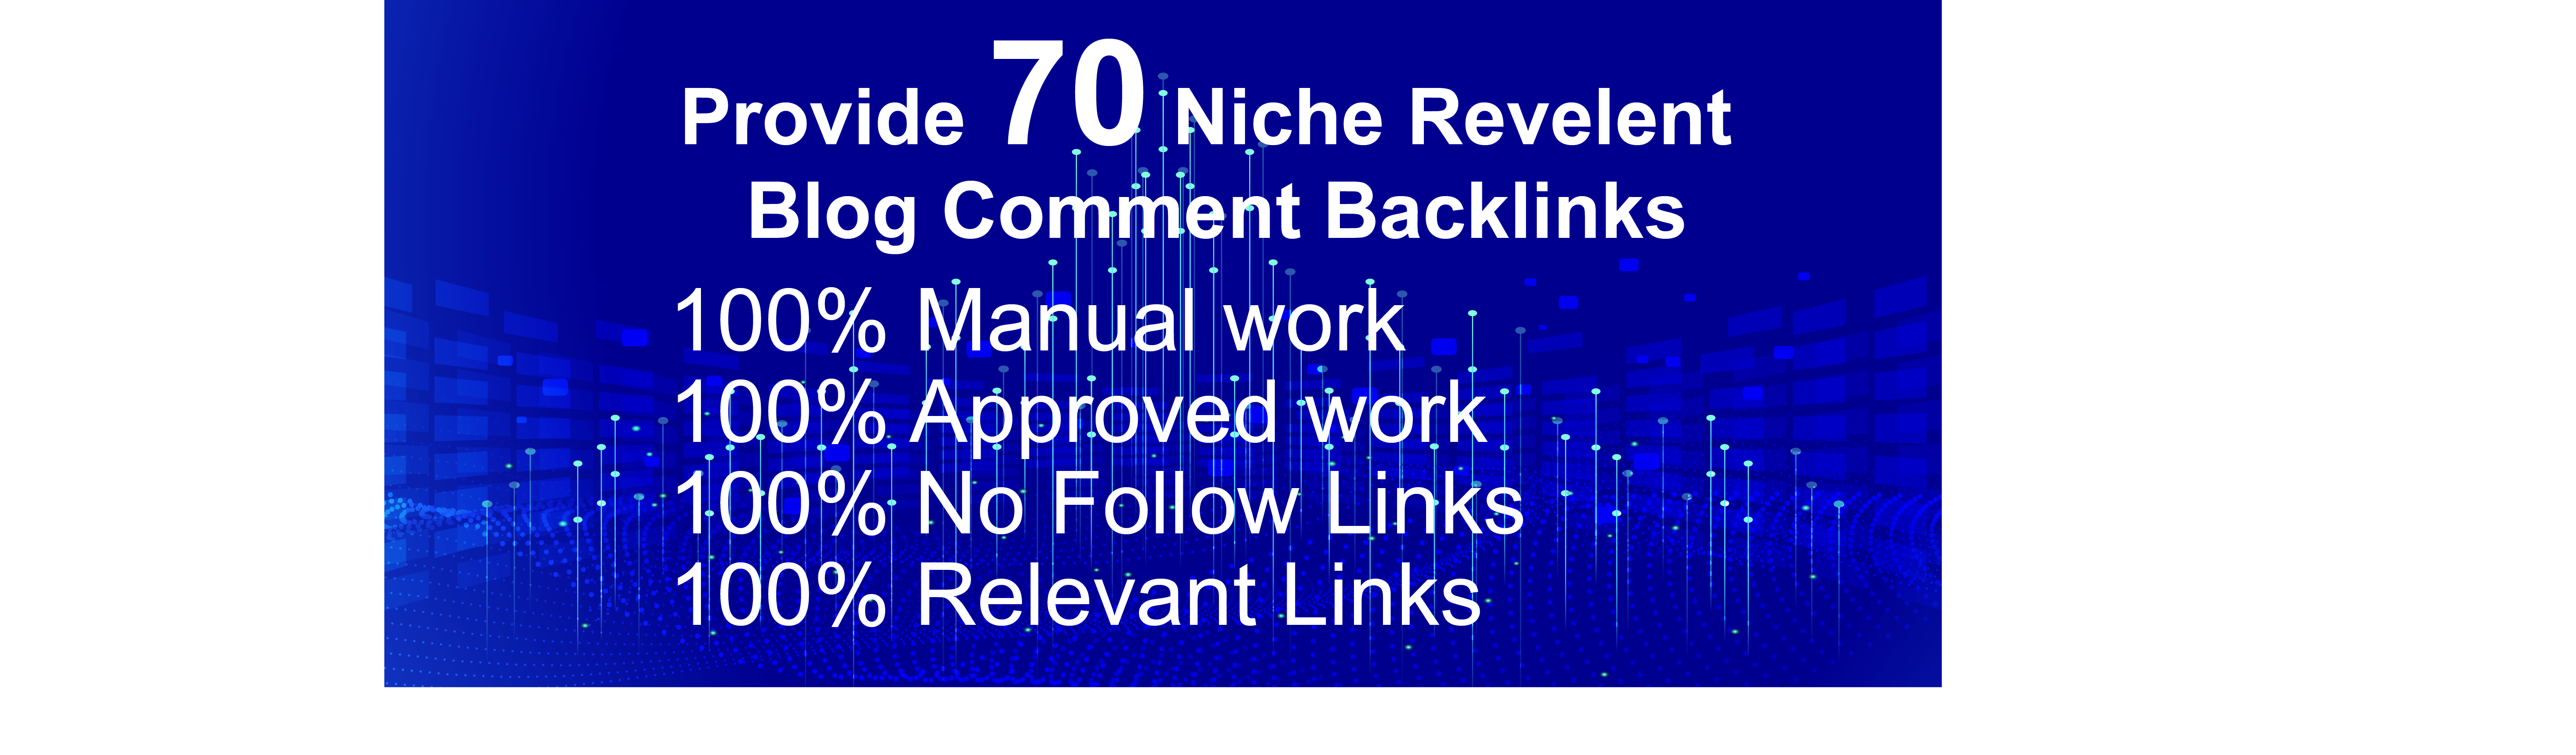 I will provide 70 niche relevant manual blog comments backlinks